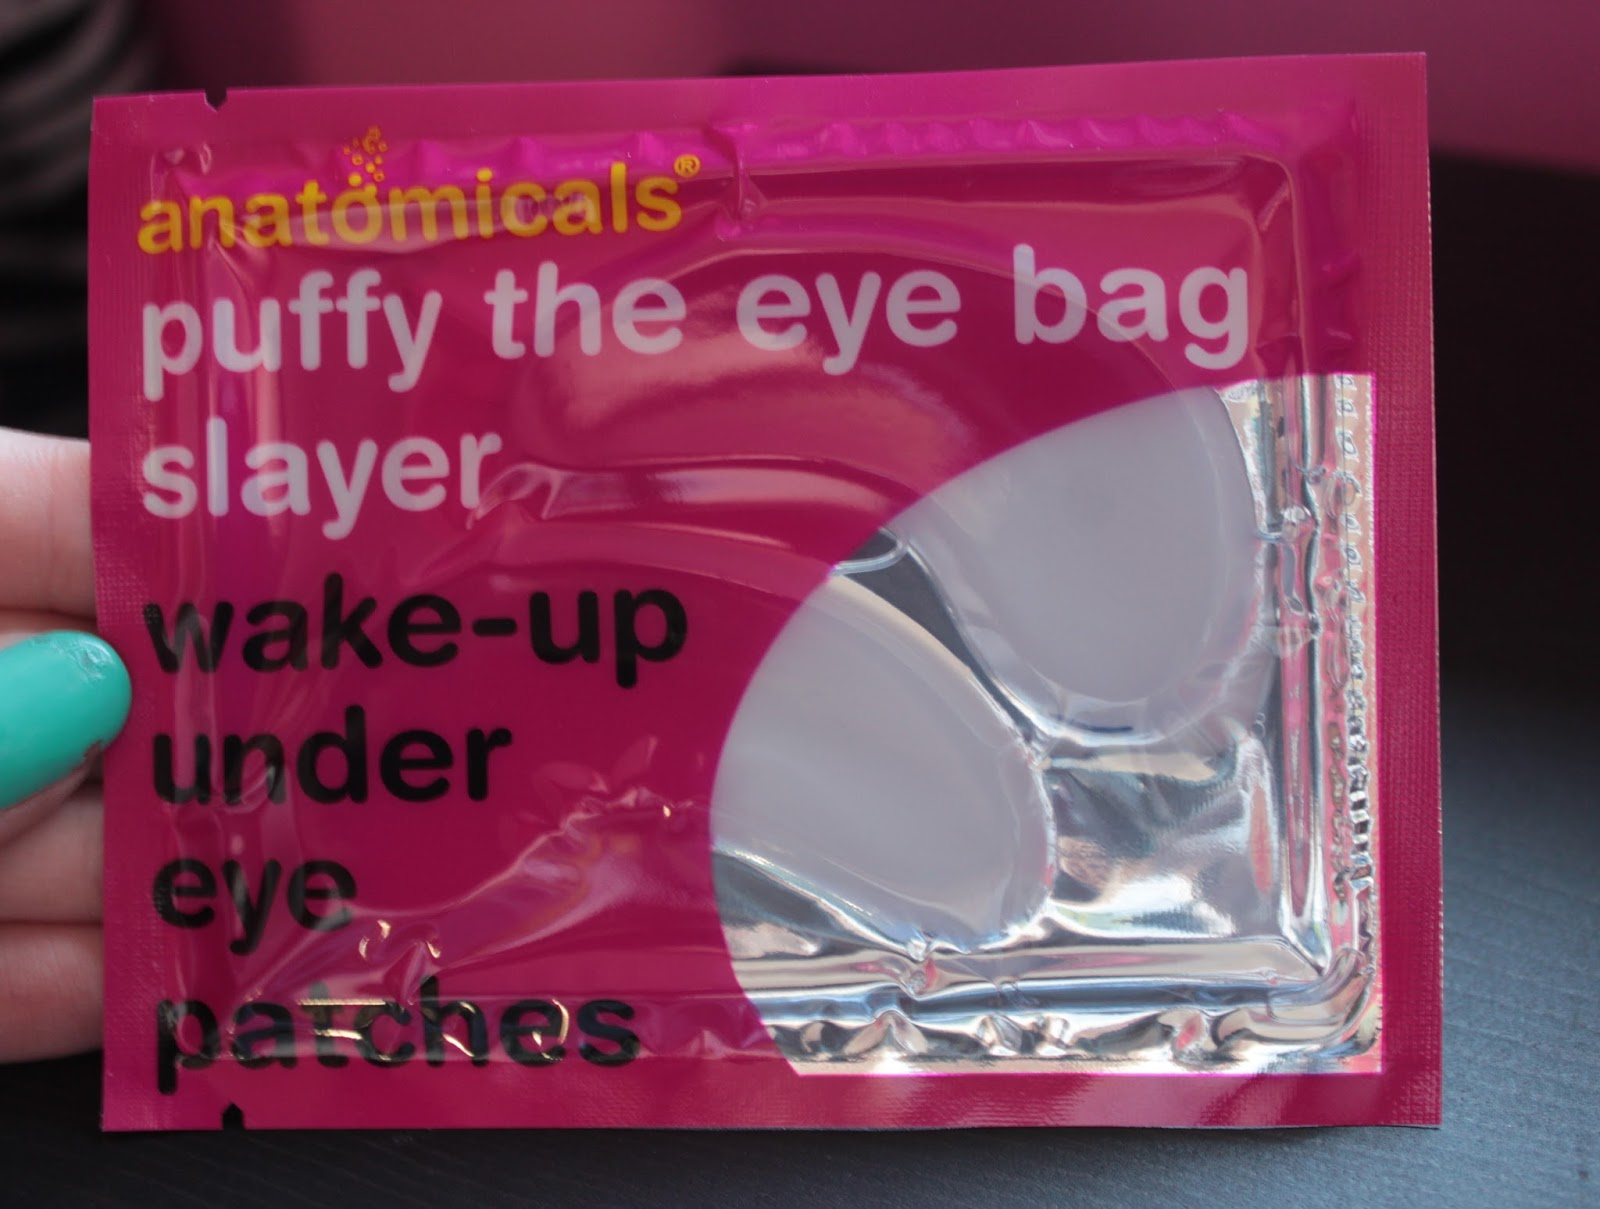 Anatomicals - Puffy The Eye Bag Slayer Wake-Up Under Eye Patches